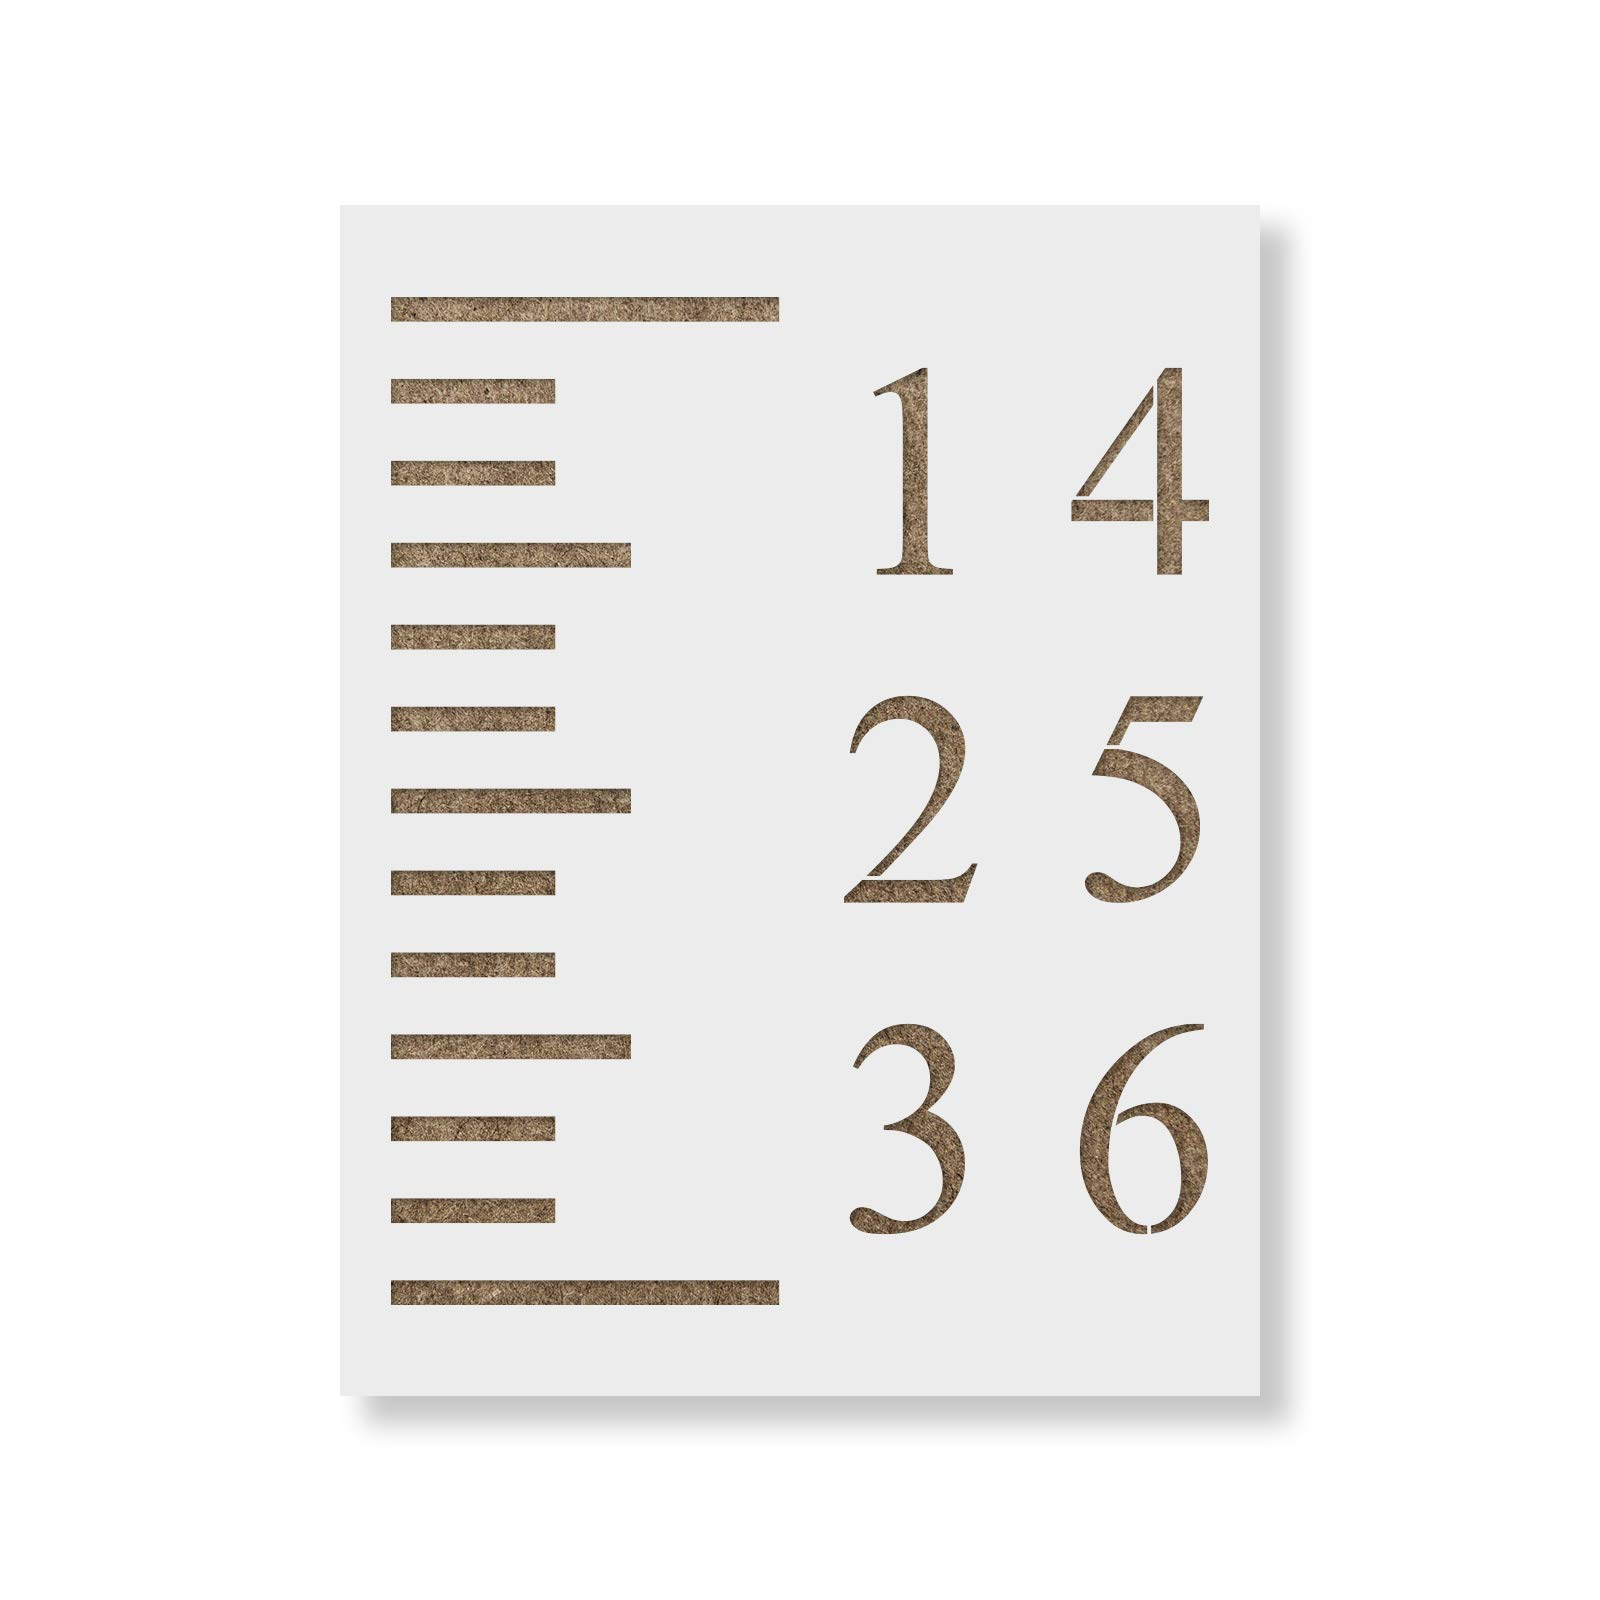 Growth Chart Stencil Template - Reusable Stencil Growth Chart Rulers - Better Than Decals!